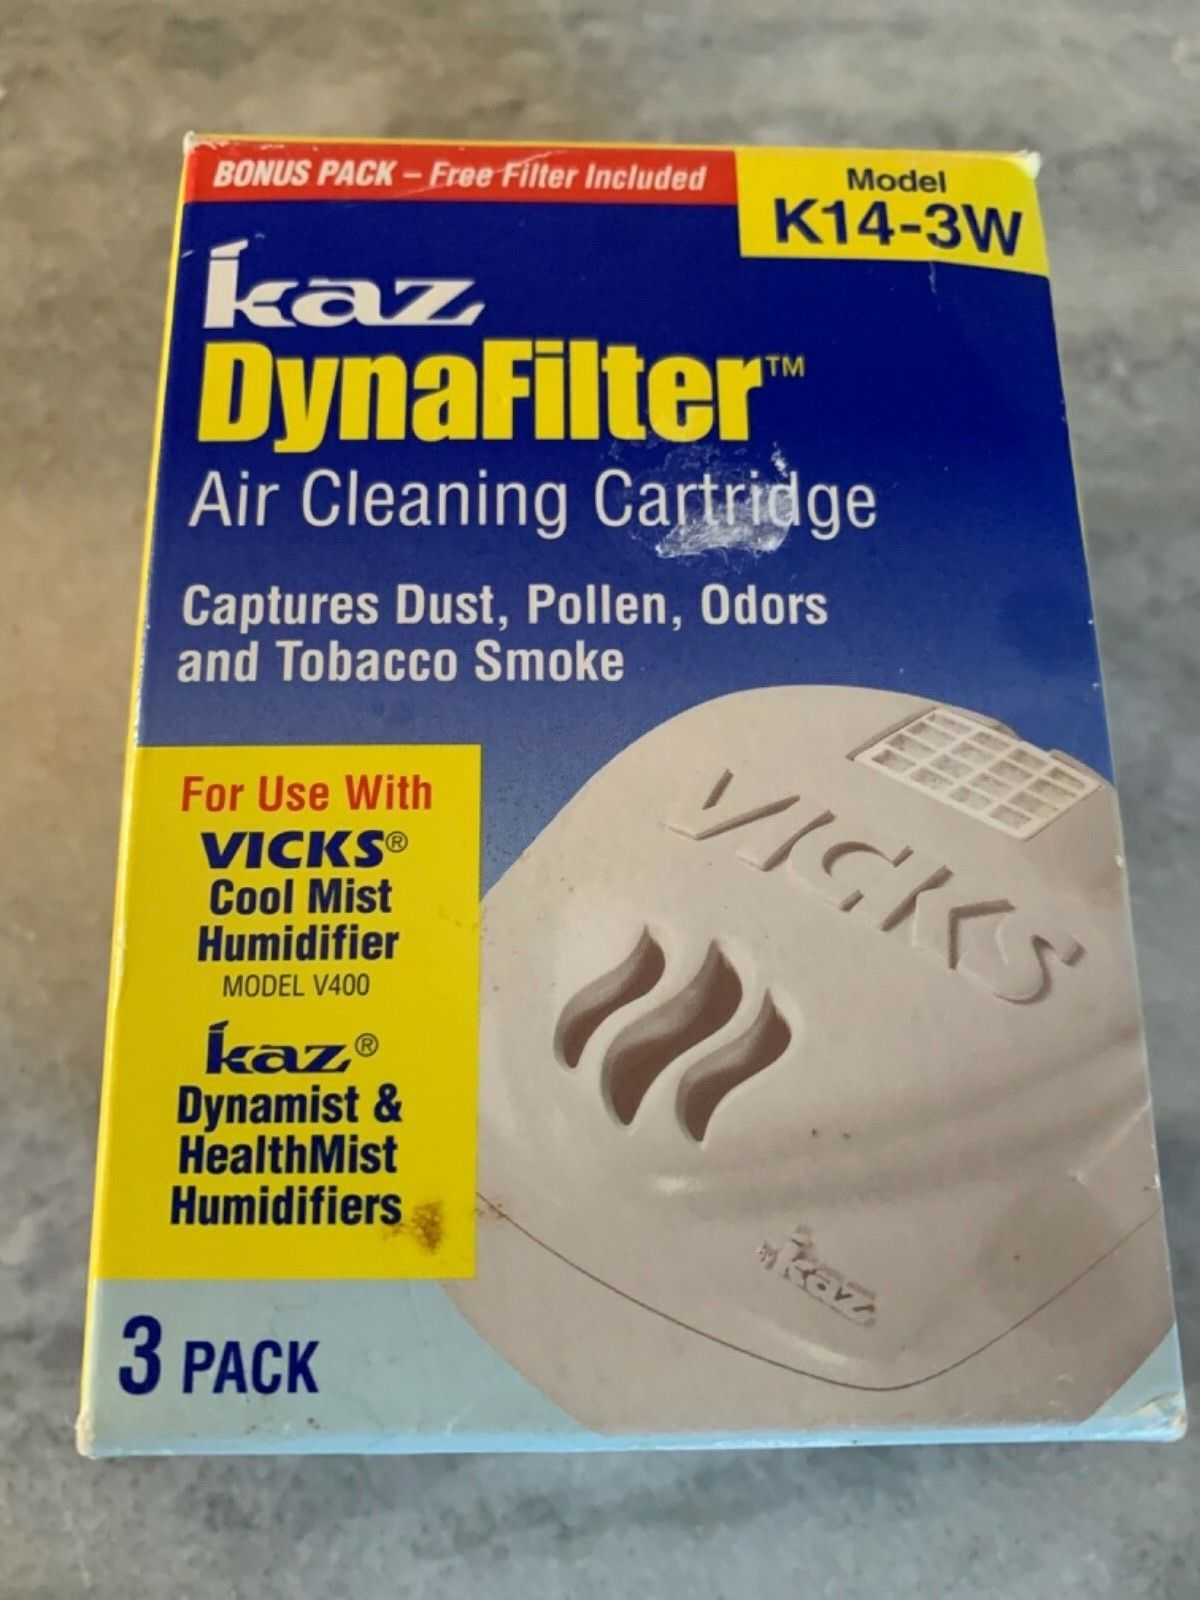 MODEL K14-3W Brand New 4 PROTEC DYNAFILTER HUMIDIFIER REPLACEMENT FILTER